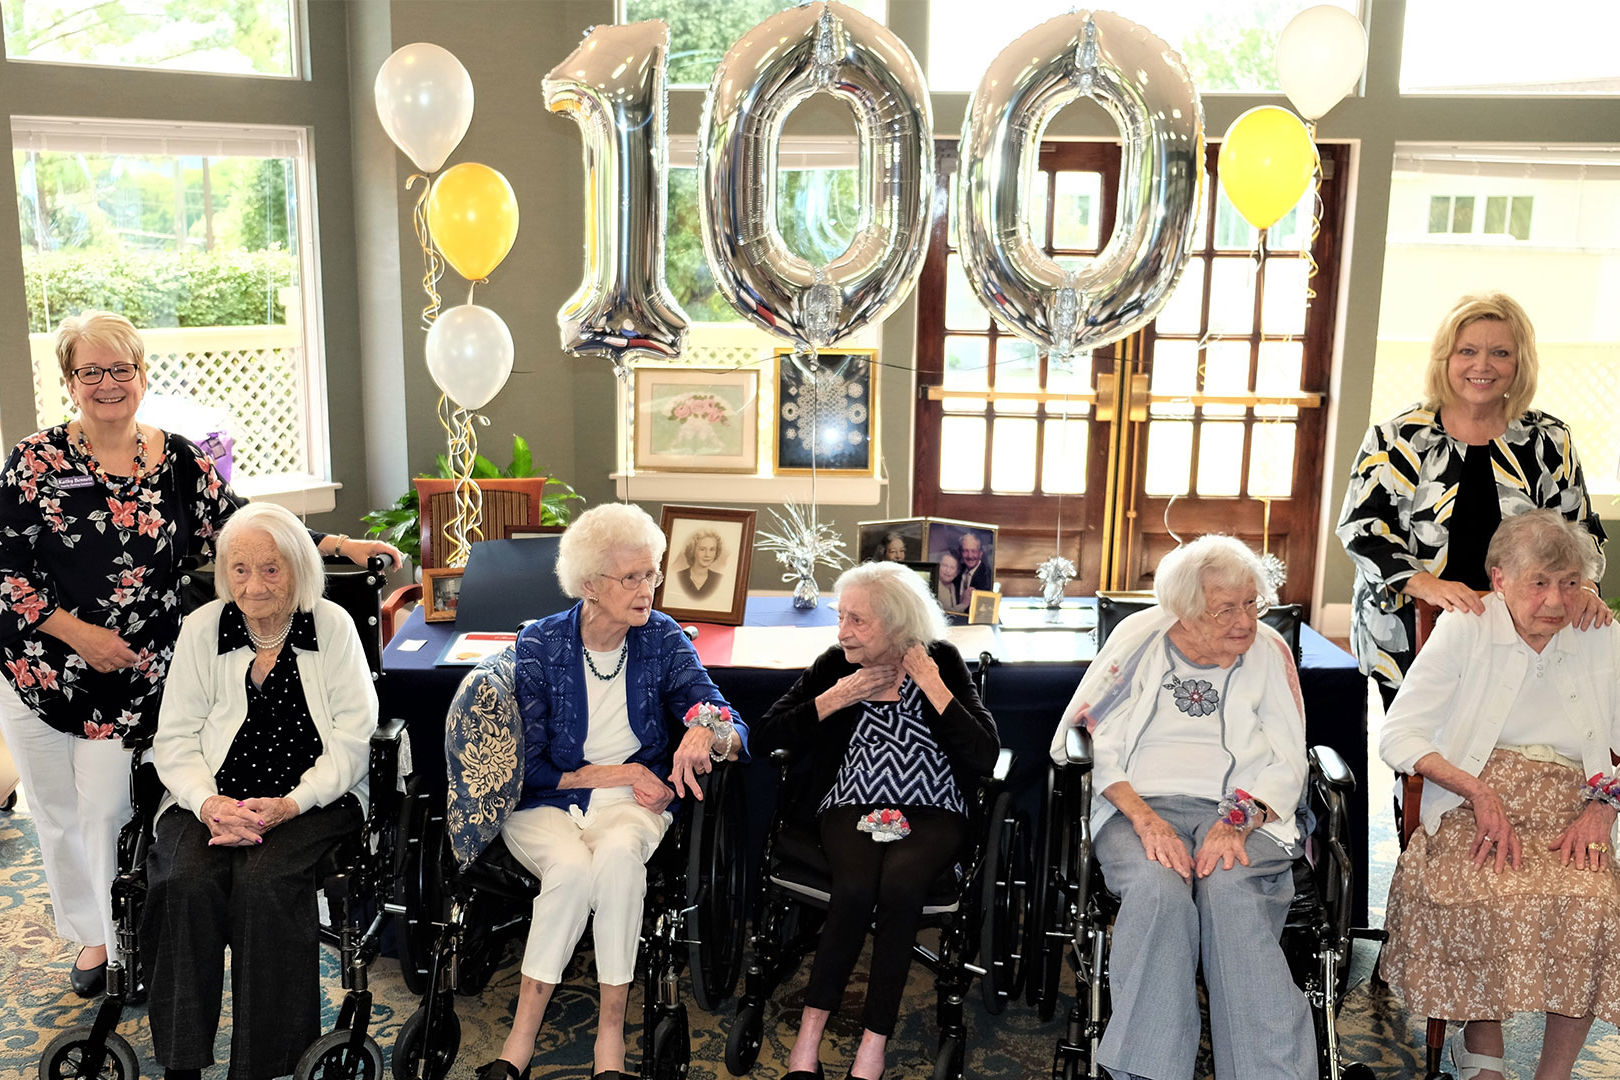 Nashville Senior Living Center Throws Party for 6 Residents Celebrating Their 100+ Birthdays